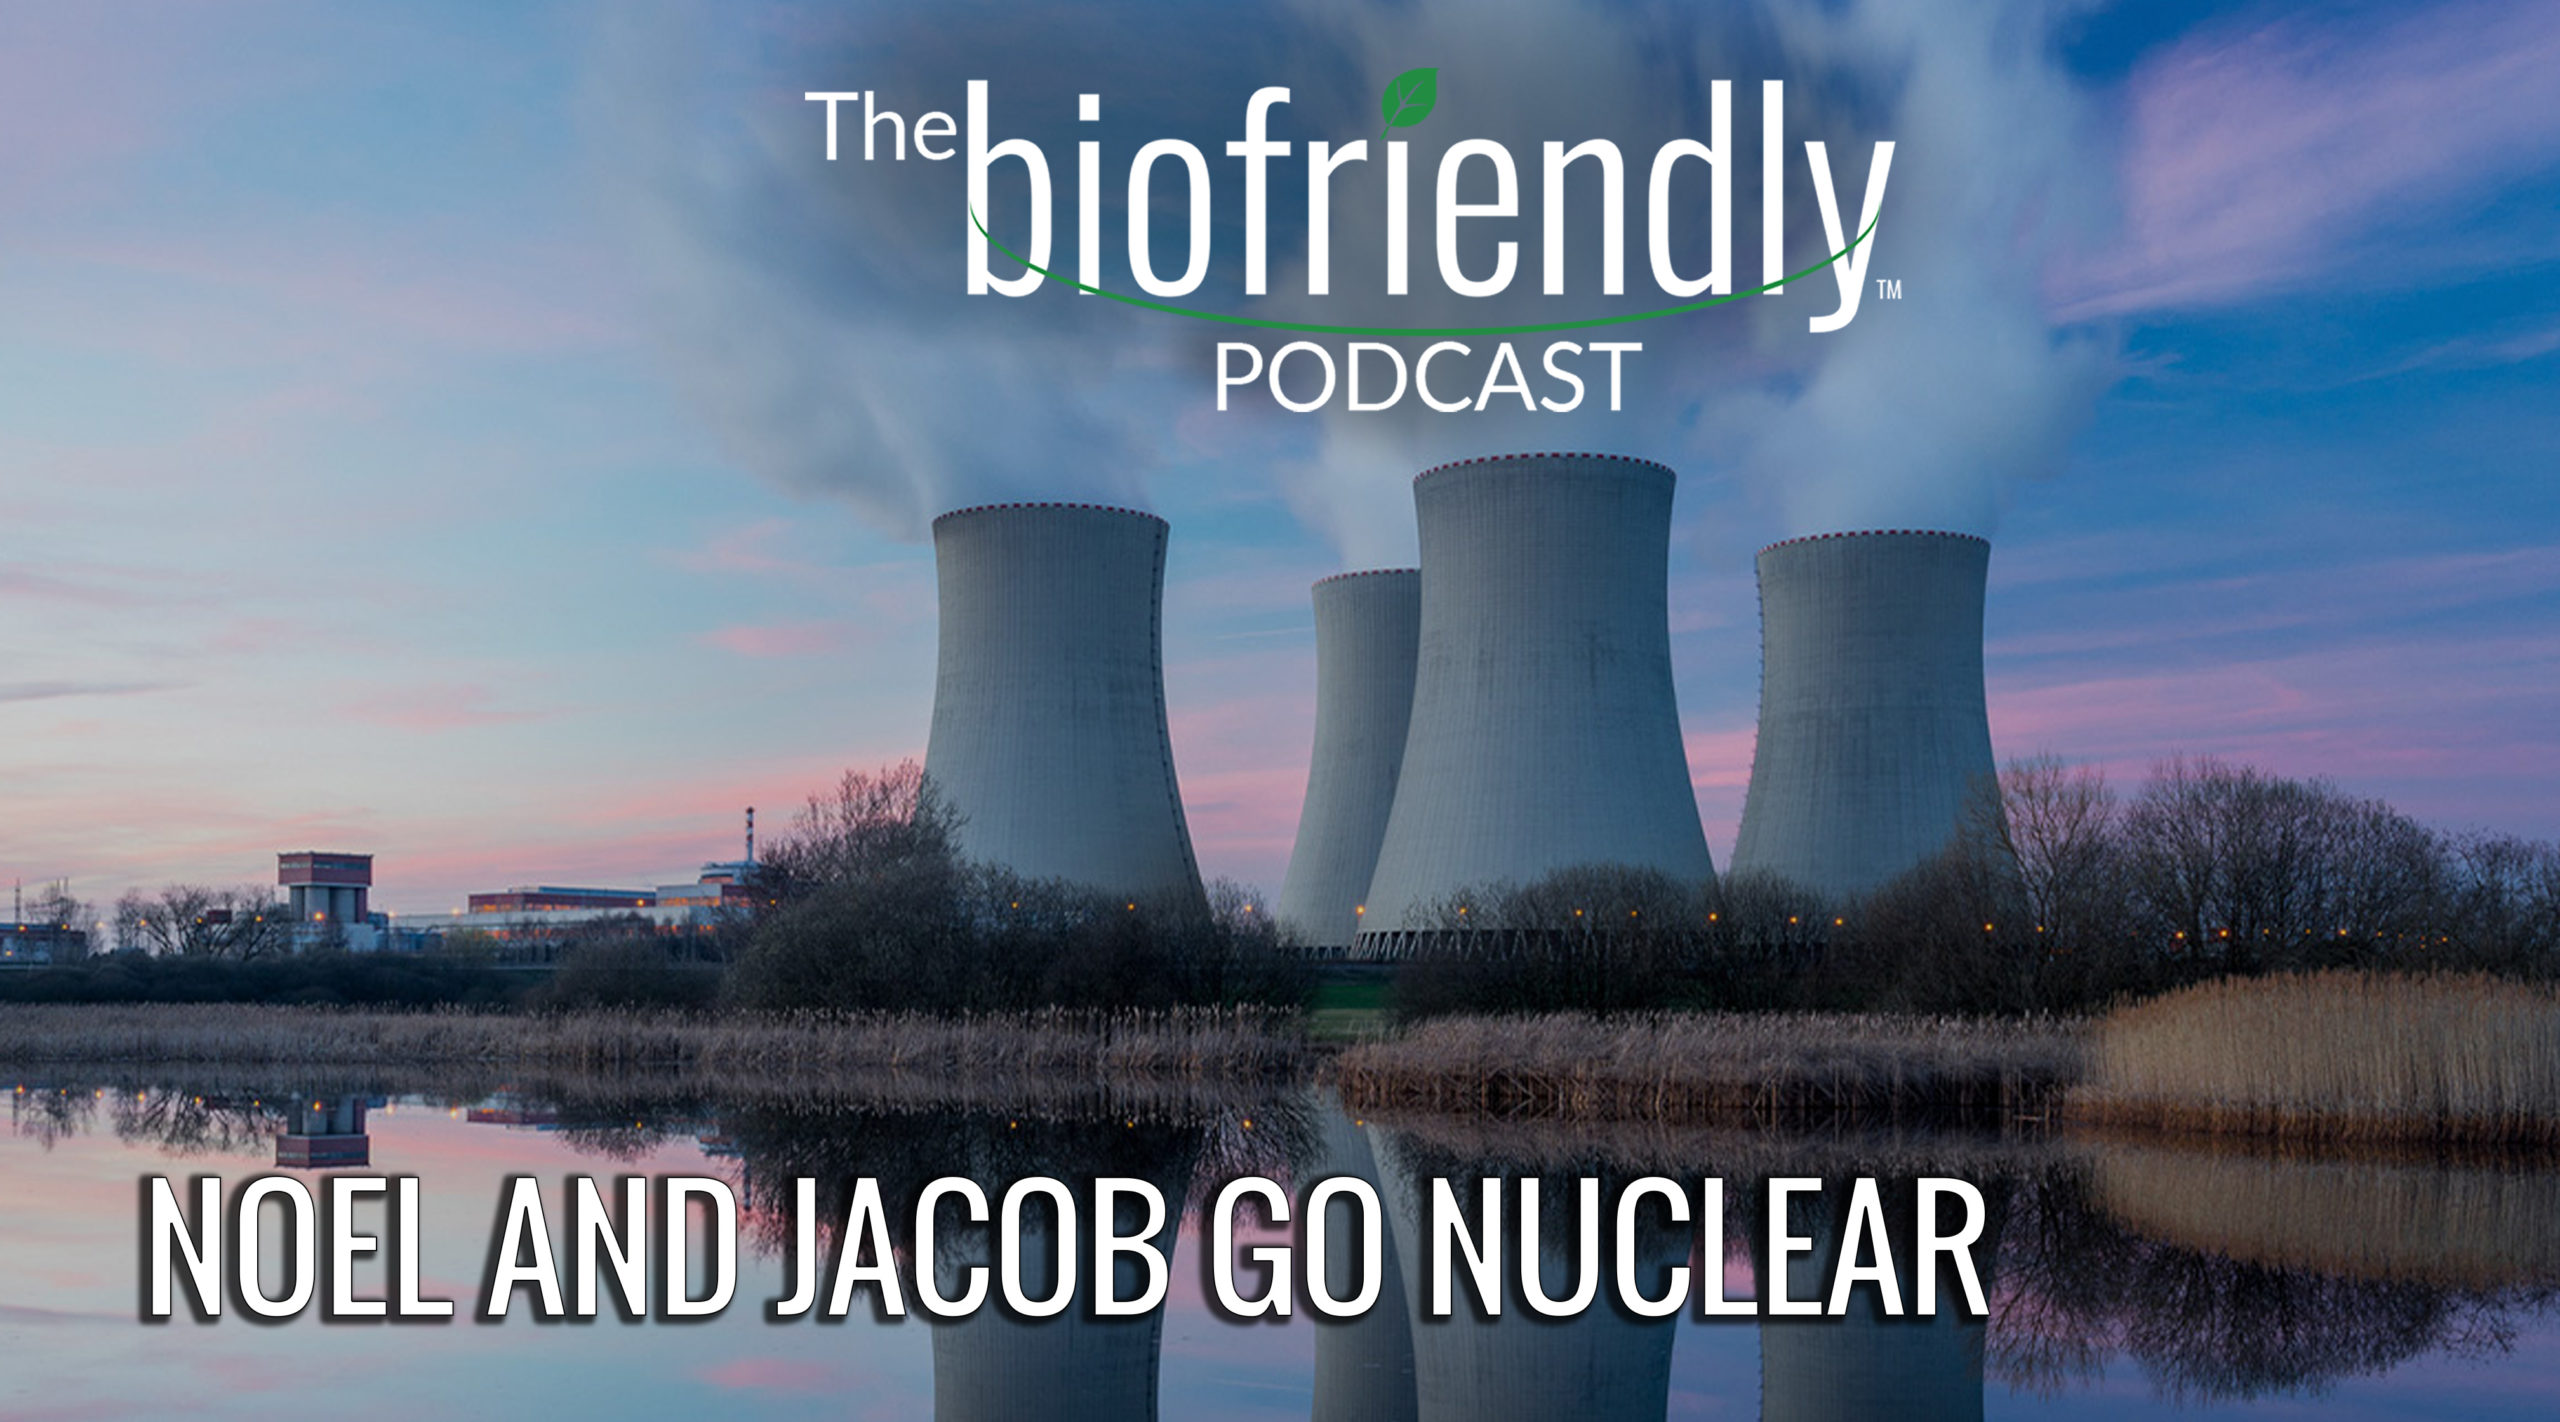 The Biofriendly Podcast - Episode 80 - Noel And Jacob Go Nuclear